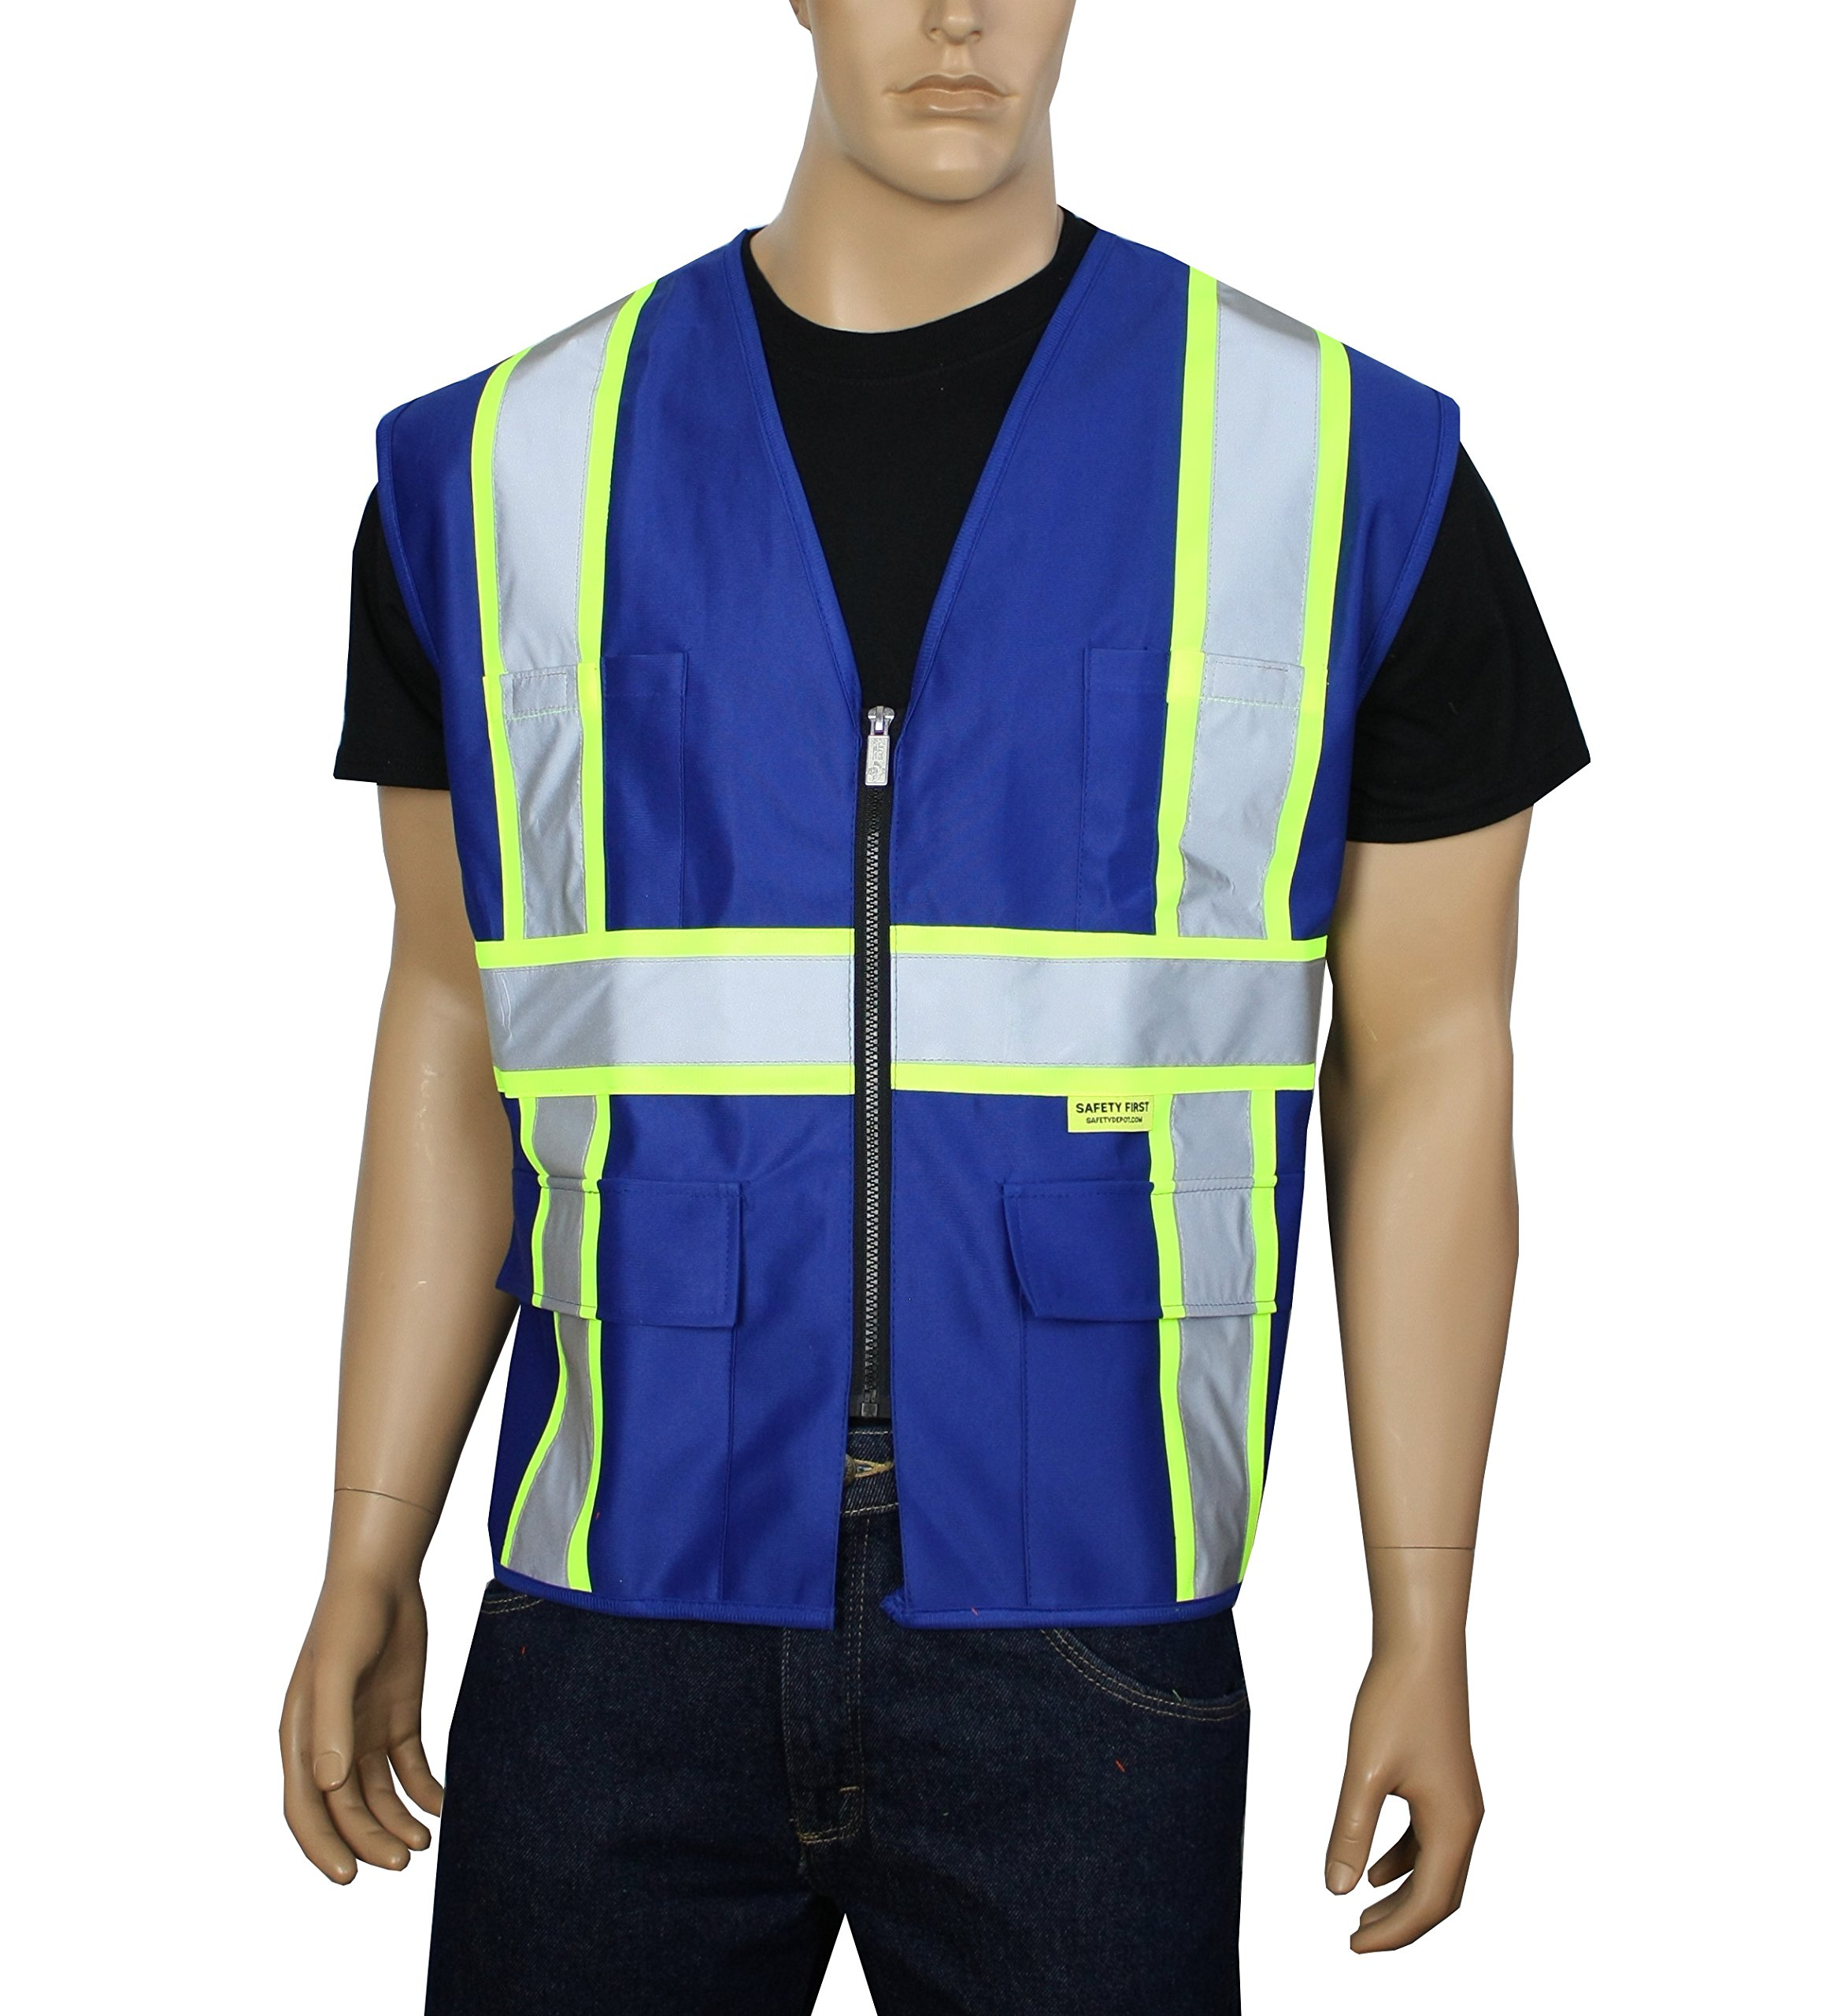 Safety Depot Breathable Safety Vest Multiple Colors Available, 4 Lower Pockets, 2 Chest Pockets with Pen Divider & High Visibility Reflective Tape P40 (Royal Blue, Large)